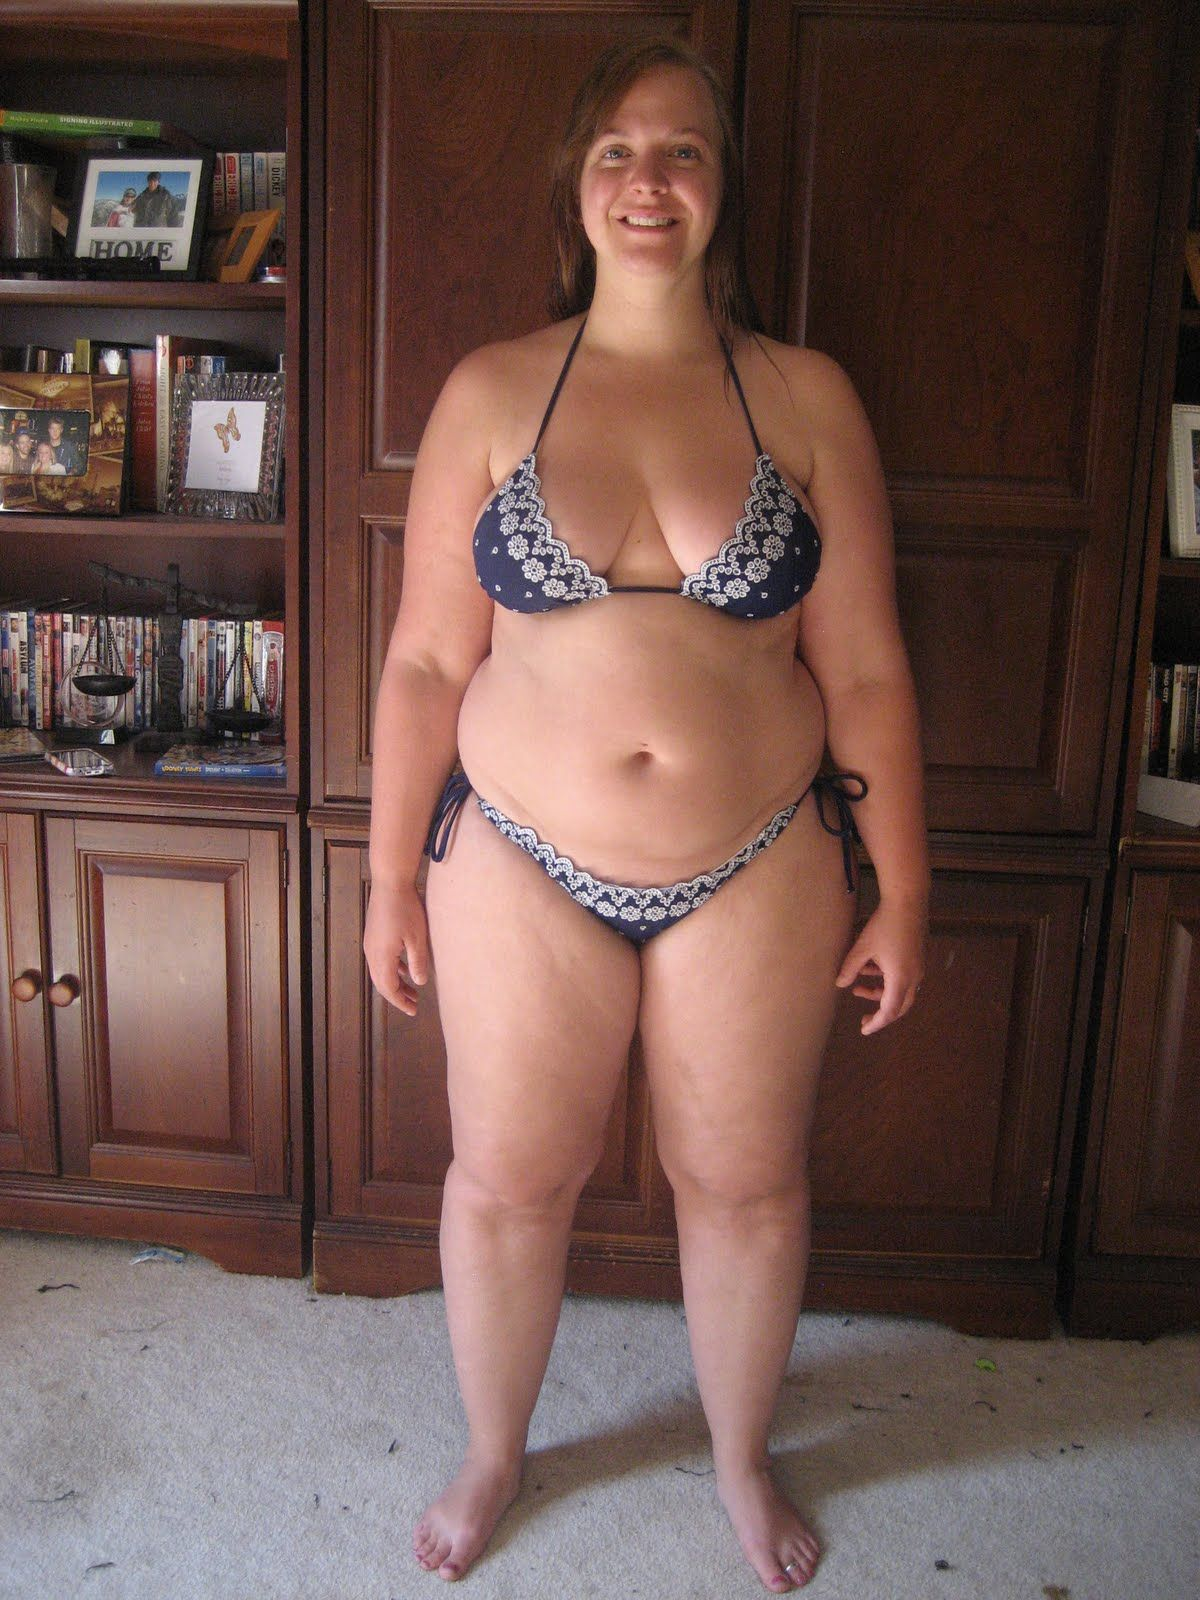 Jay harmonious woman too chubby for swimsuit wanna eat